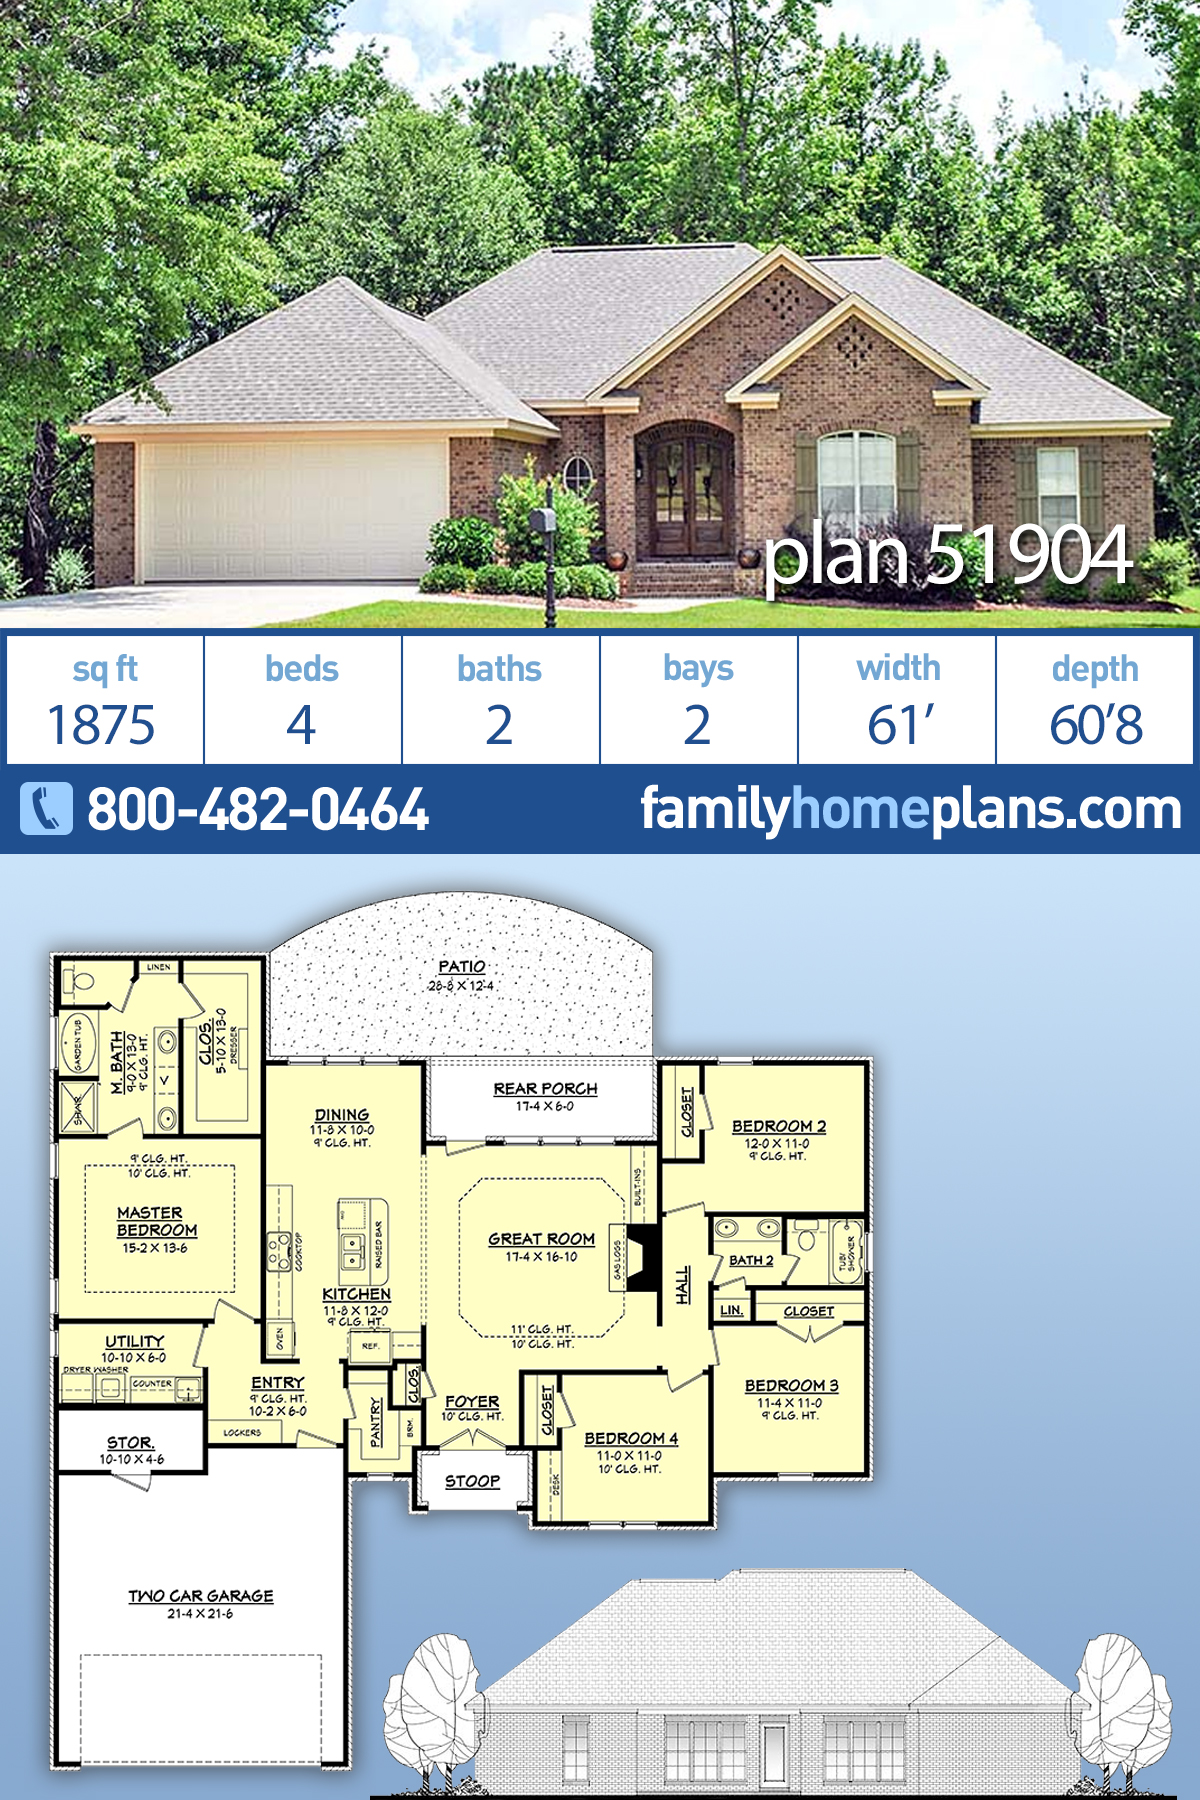 Country, European, Traditional House Plan 51904 with 4 Beds, 2 Baths, 2 Car Garage